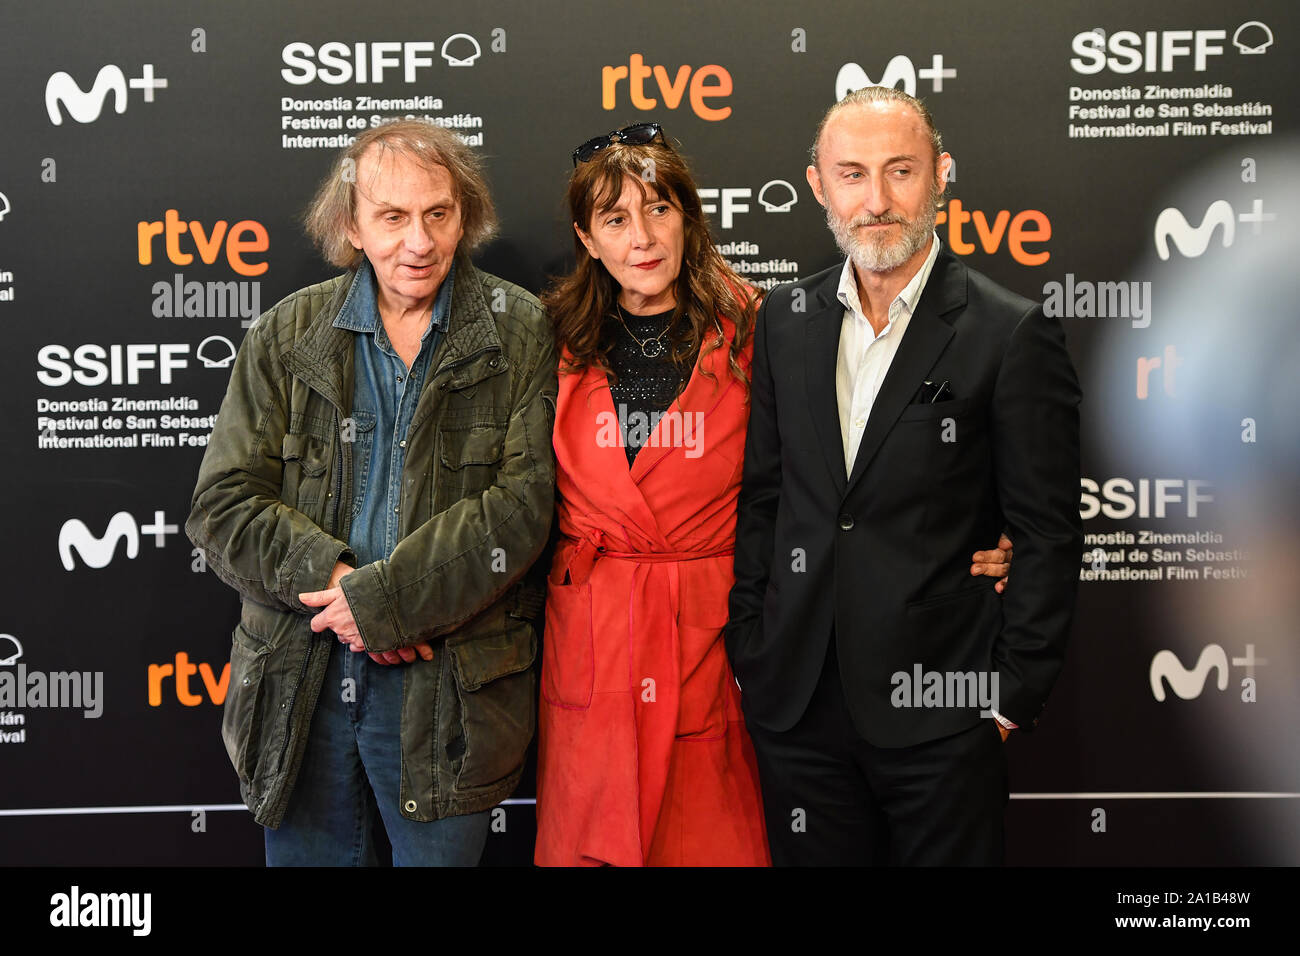 San Sebastian, Spanien. 25. September 2019. Michel Houellebecq, Sylvie Pialat und Guillaume Nicloux teilnehmen Fotoshooting für den Film 'Thalasso' an der 67th International Film Festival in San Sebastian. Credit: Julen Pascual Gonzalez/Alamy leben Nachrichten Stockfoto